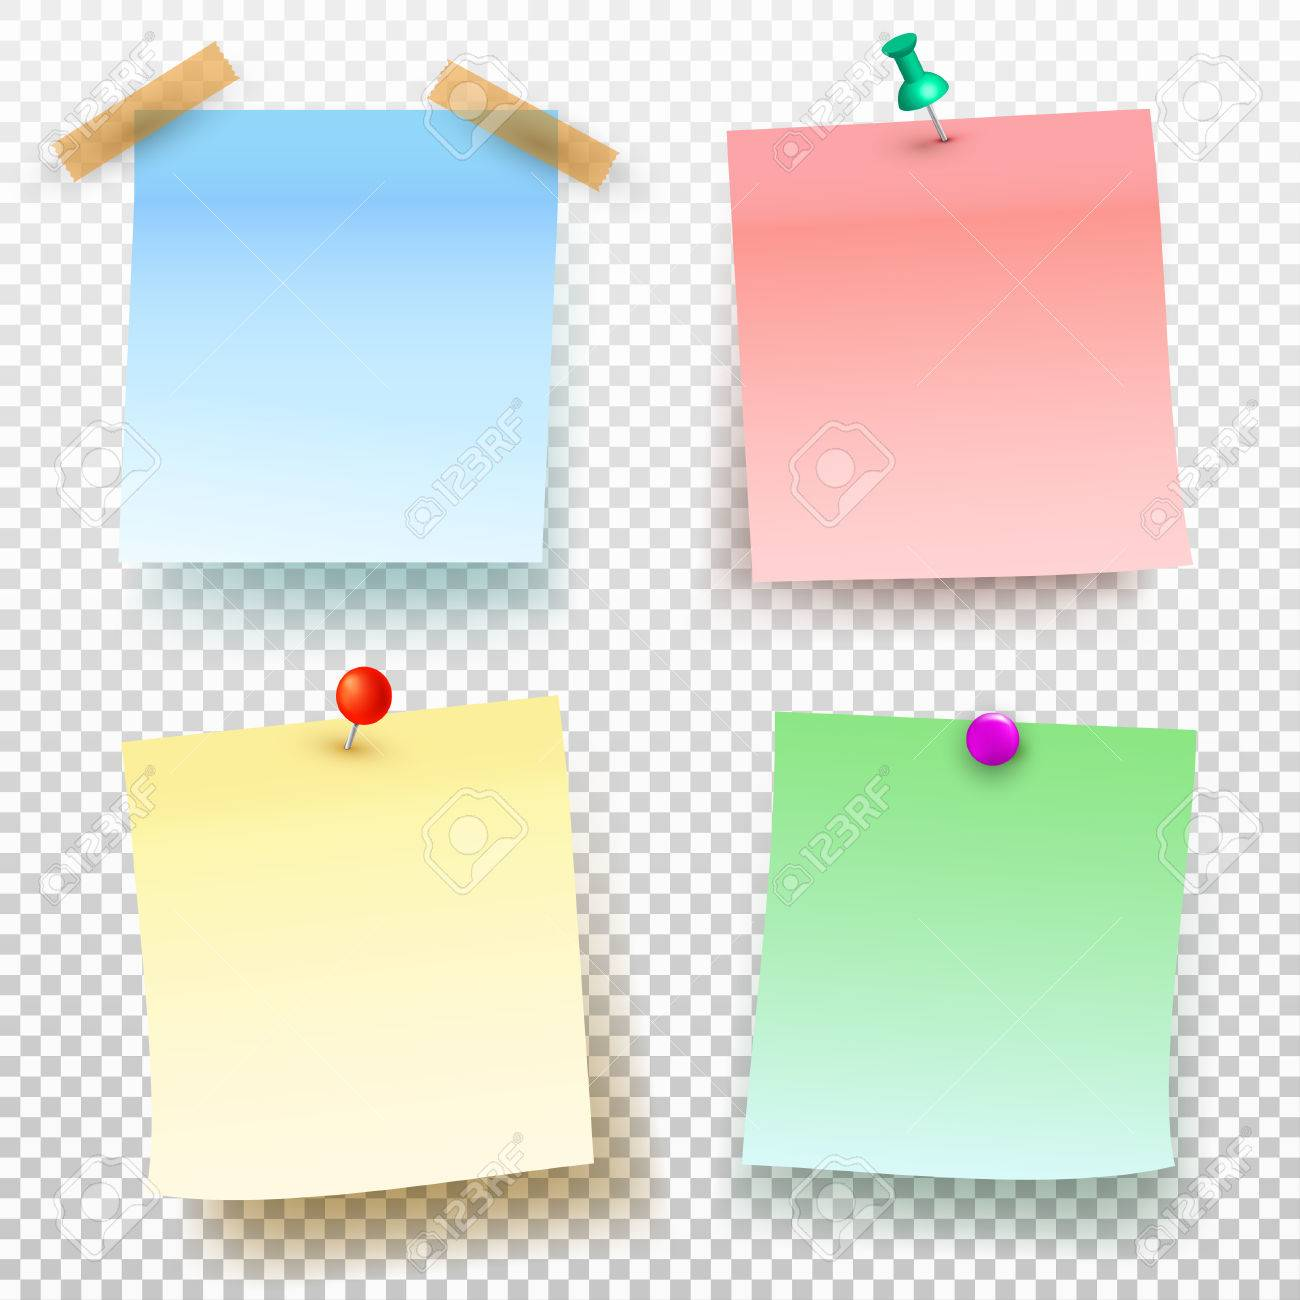 Set Of Colored Sticky Note And Push Pin Isolated On Transparent ...